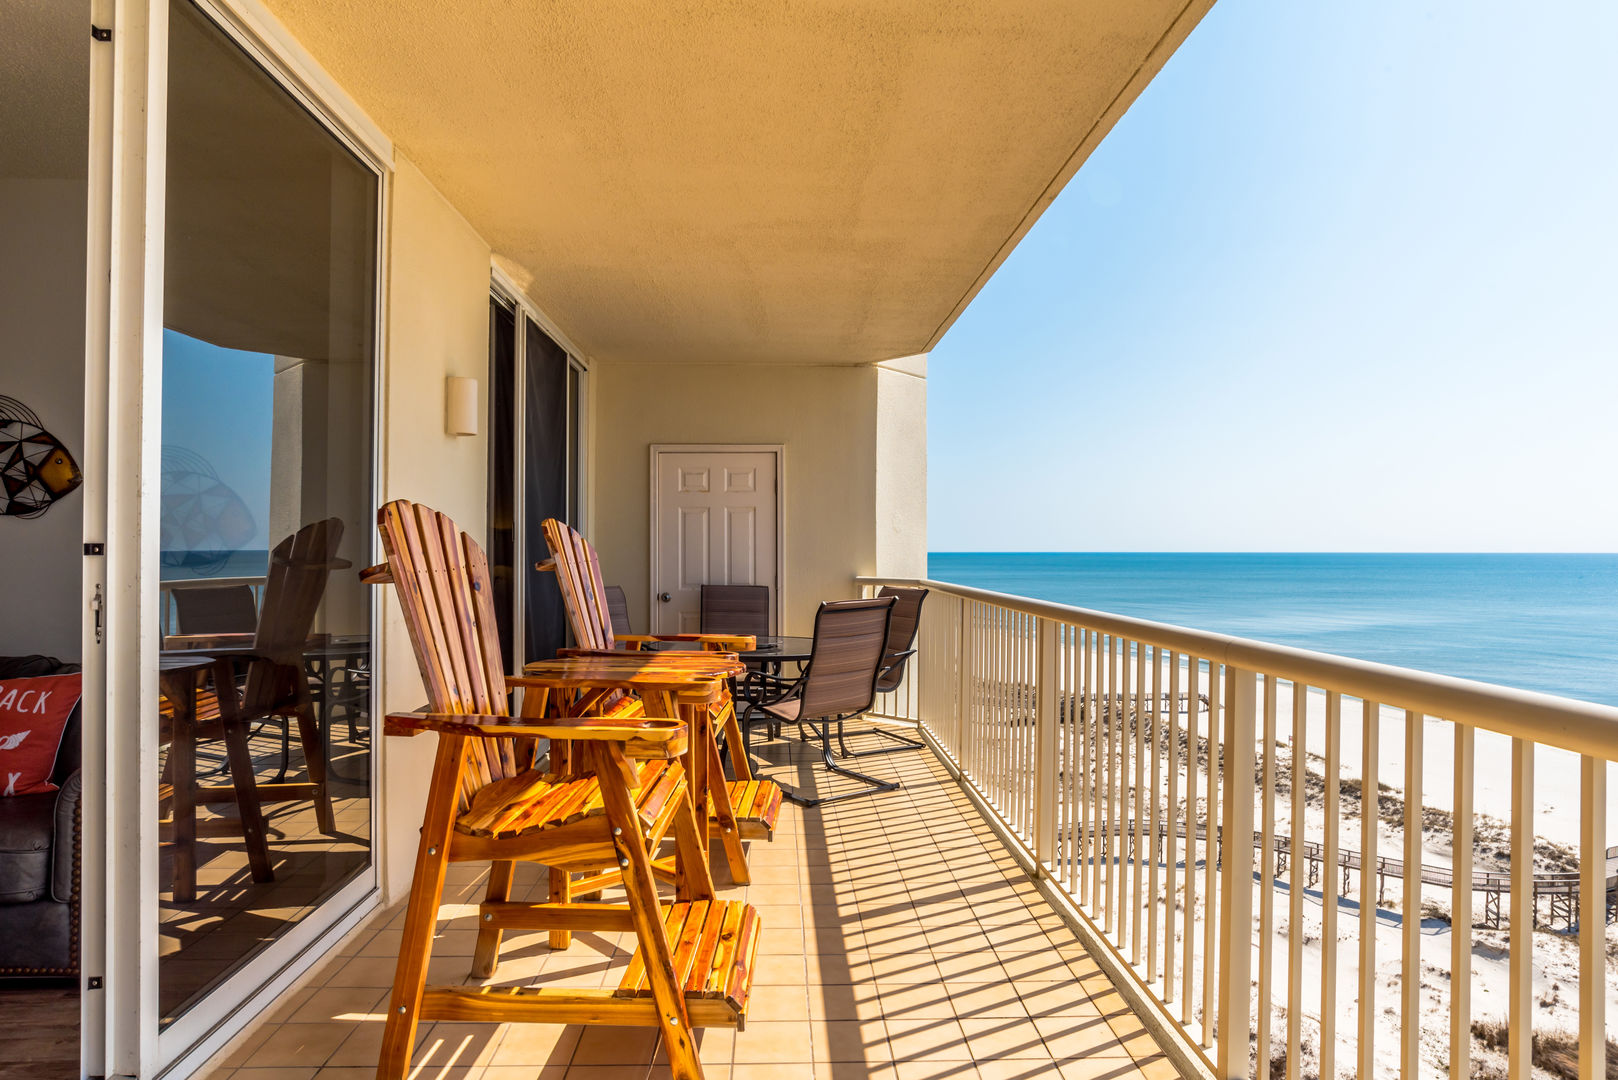 Sit Back, Relax, And Enjoy The View from this Guf Shores condo rental